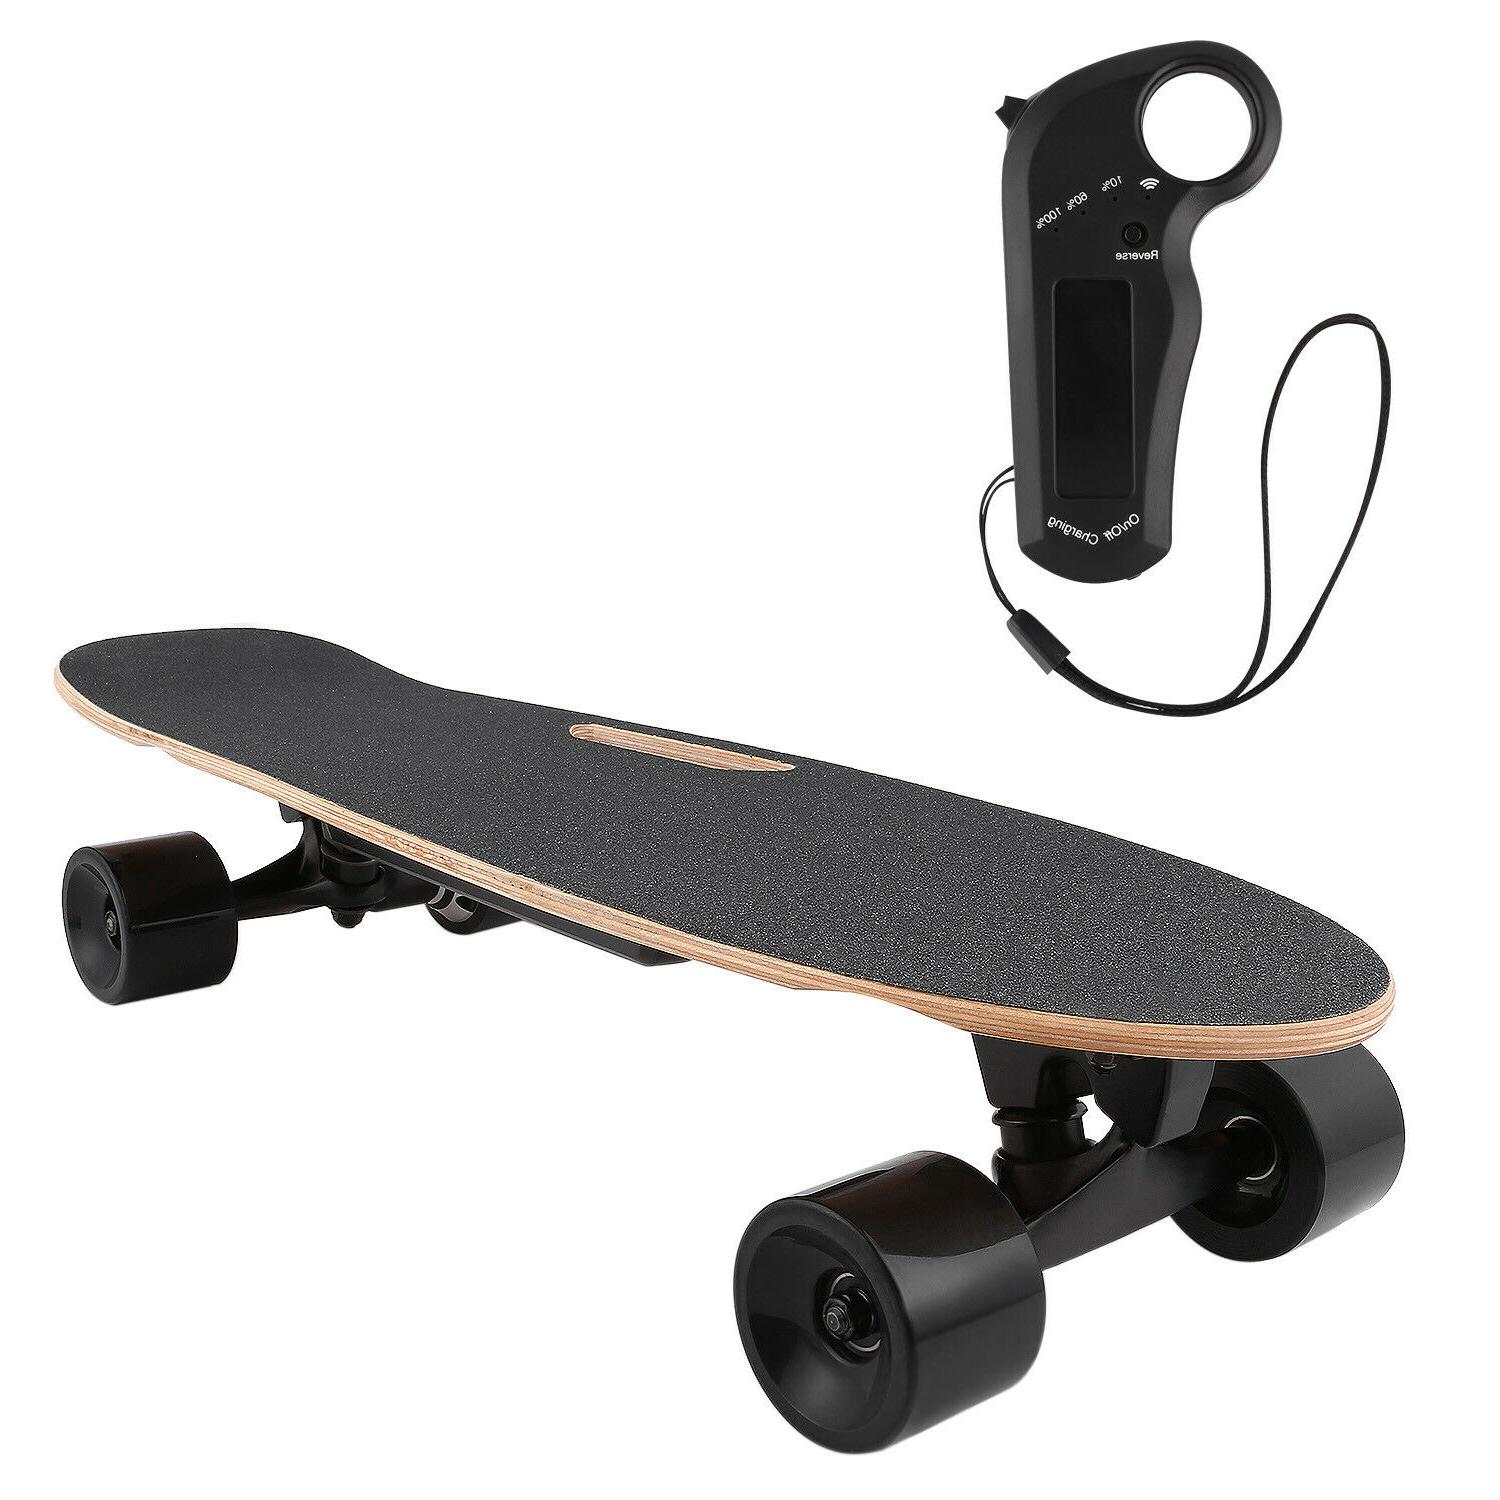 Aceshin Electric Skateboard 350W Motor Longboard Board Wirel